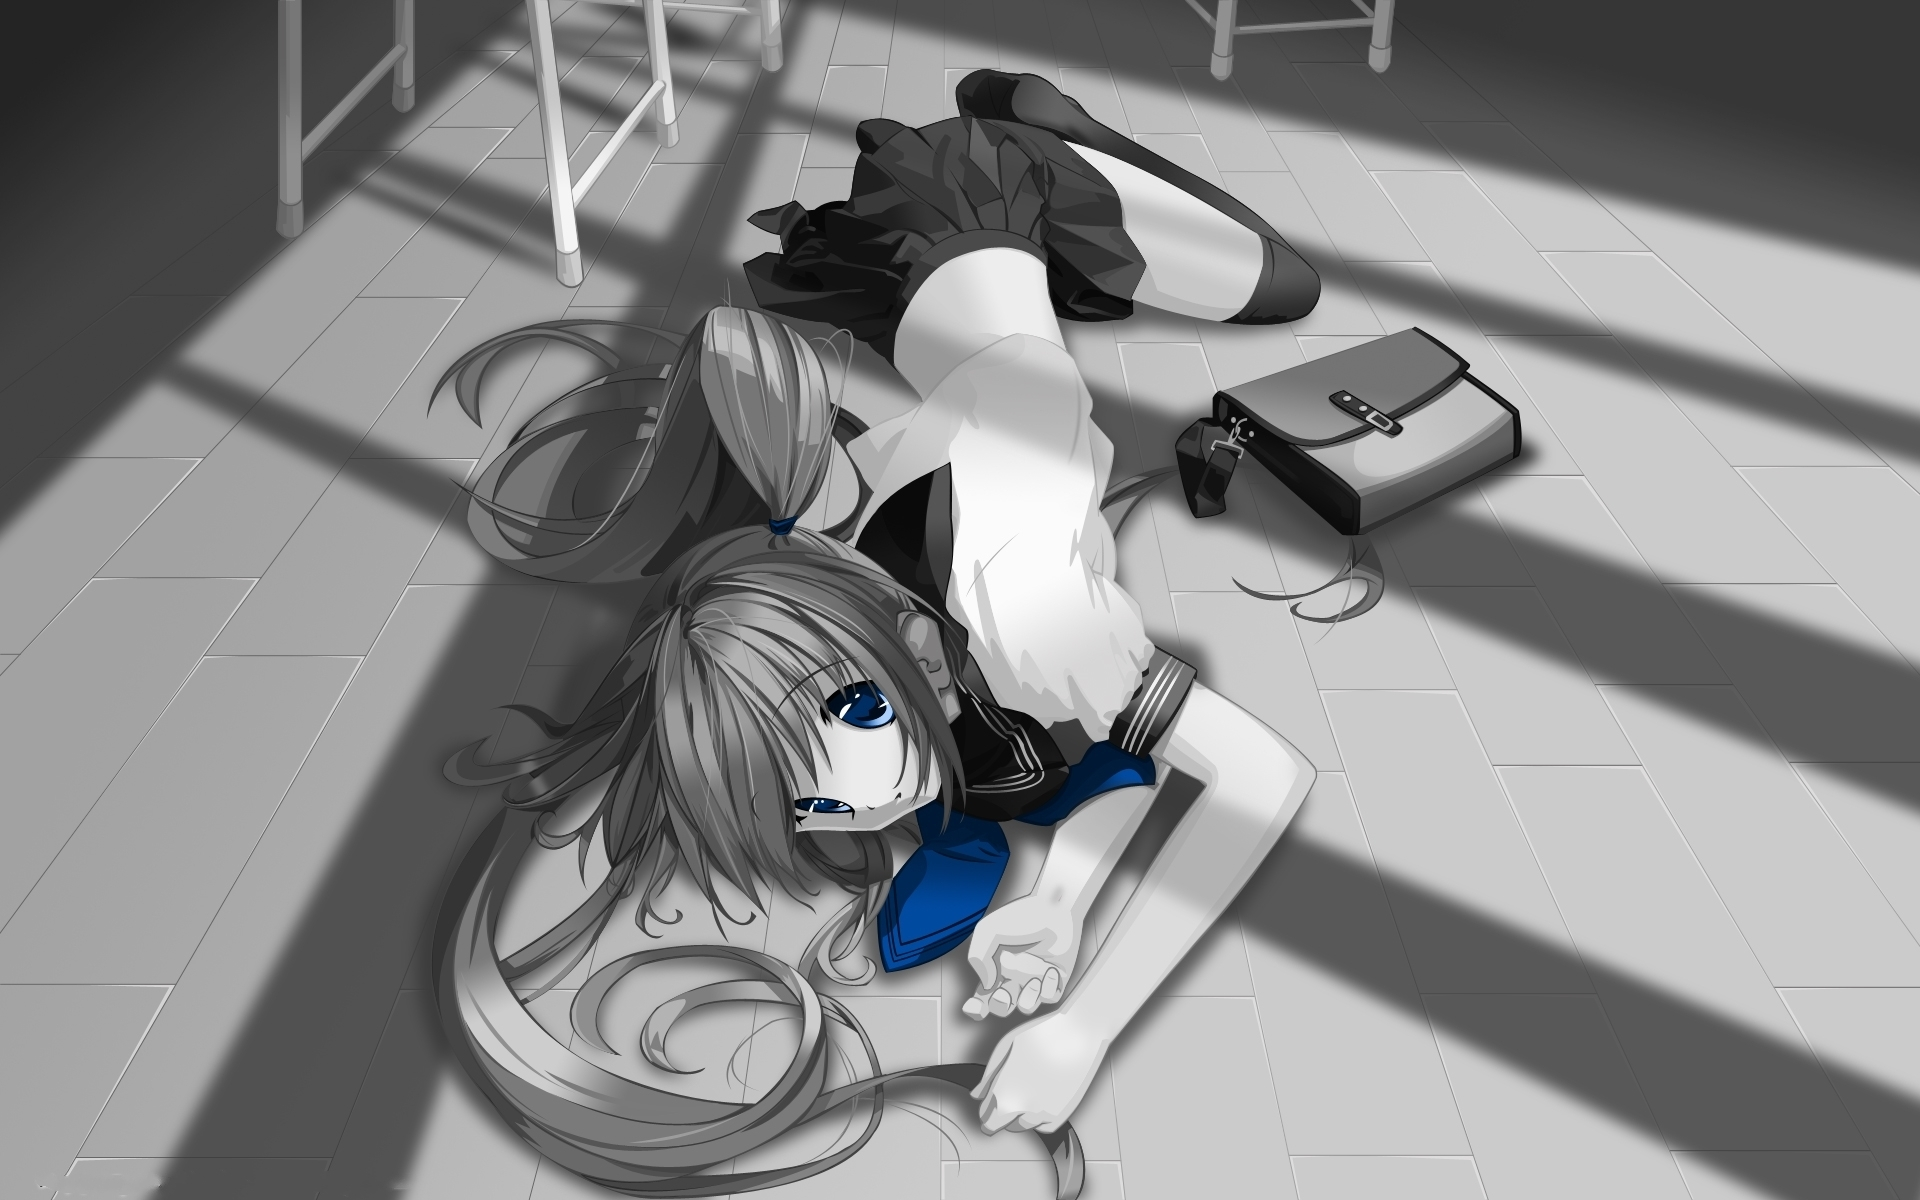 Black And White, Blue Eyes, Long Hair, Girl, School Uniforms, Knee High Socks, Female, Solo, School Bag, School Uniform, Uniform, Laying Down, One Girl, Twin Tails